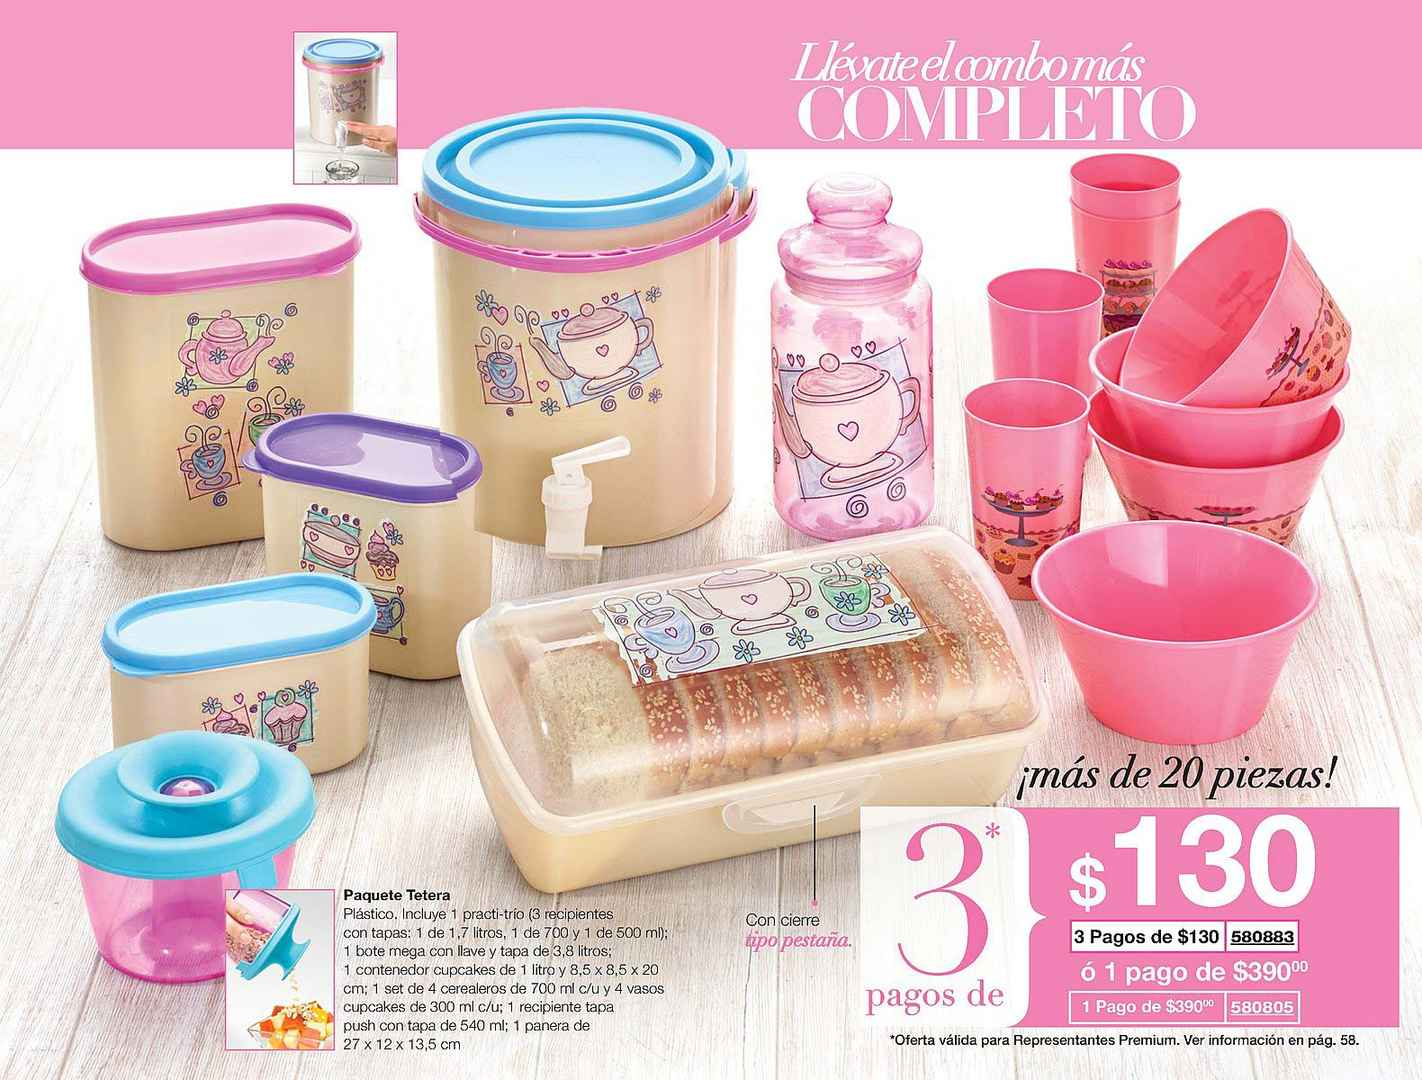 Avon folleto fashion home campa a 16 2013 for Donde venden murales para pared